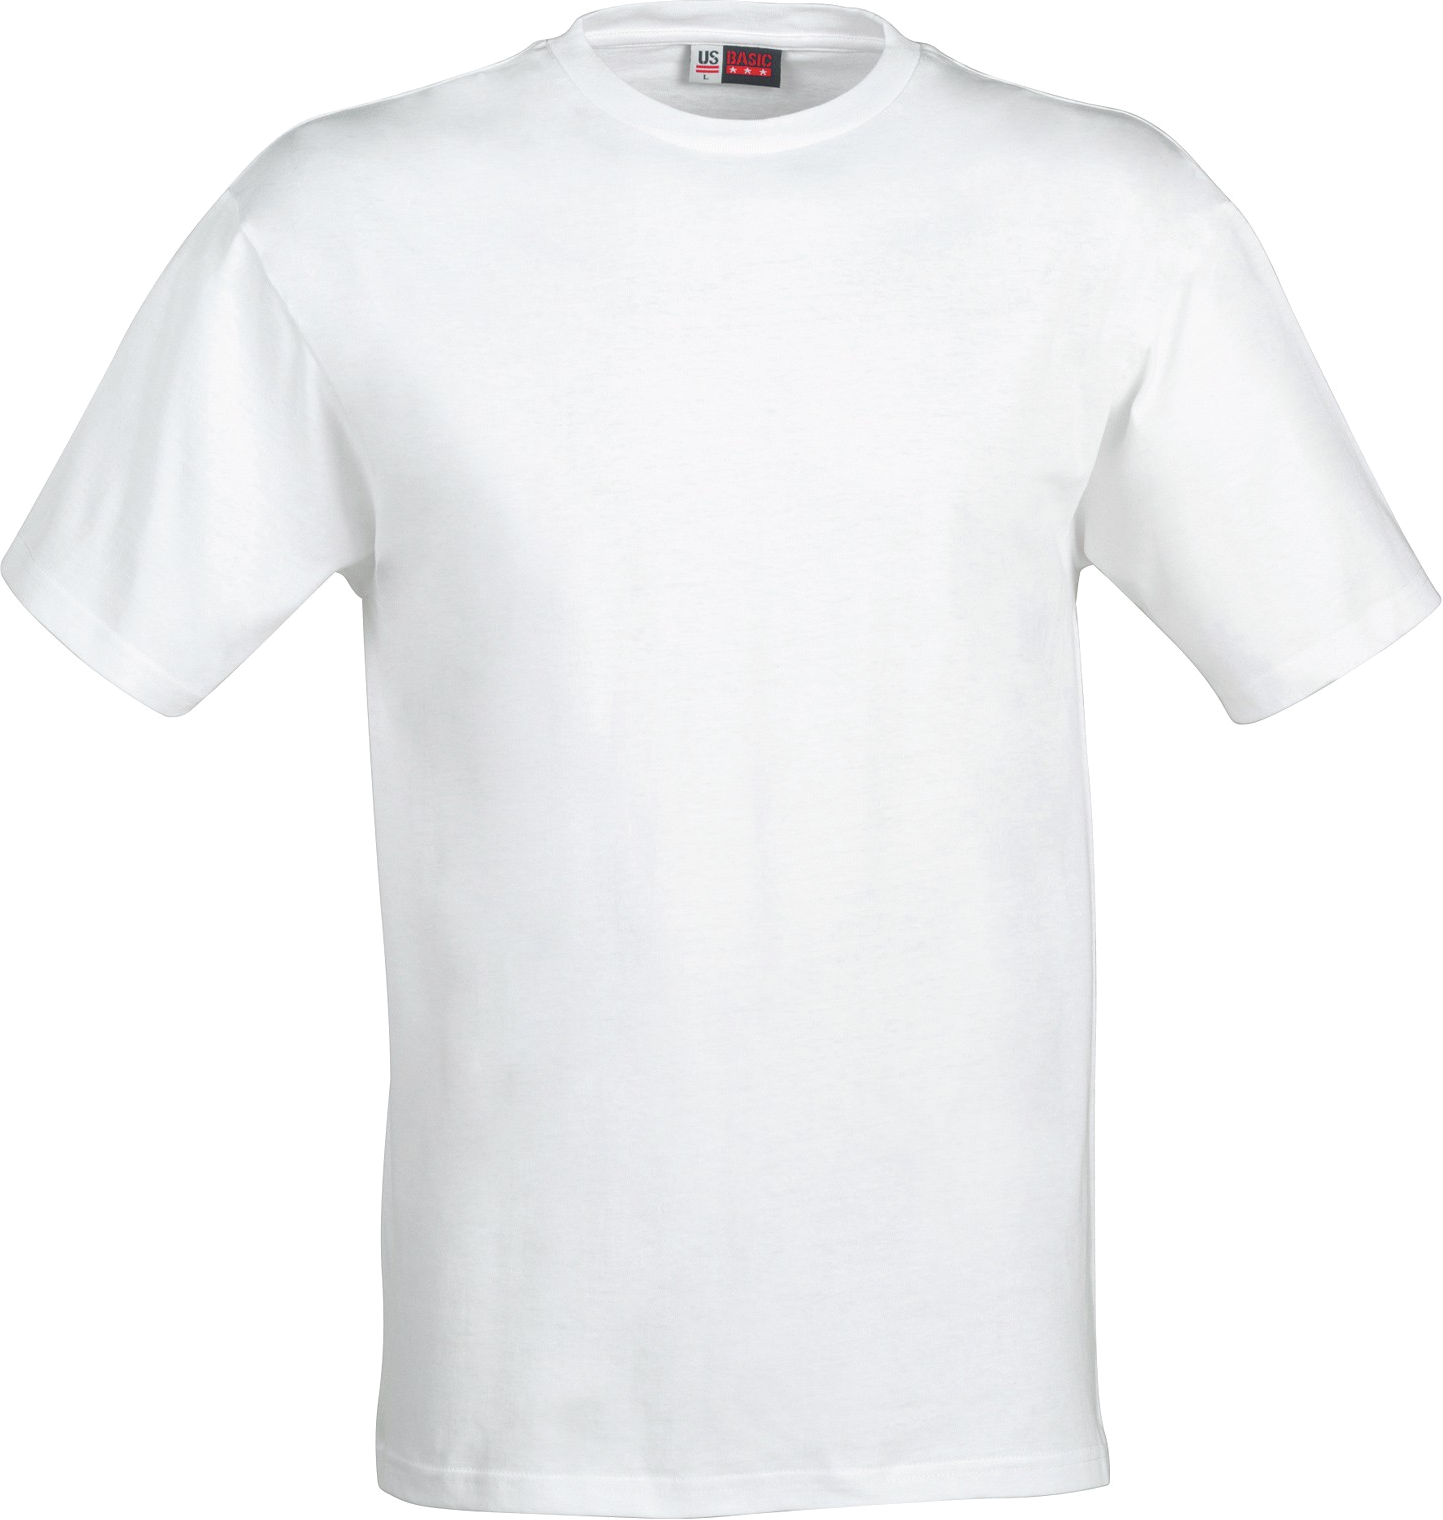 white t-shirt png #93441586